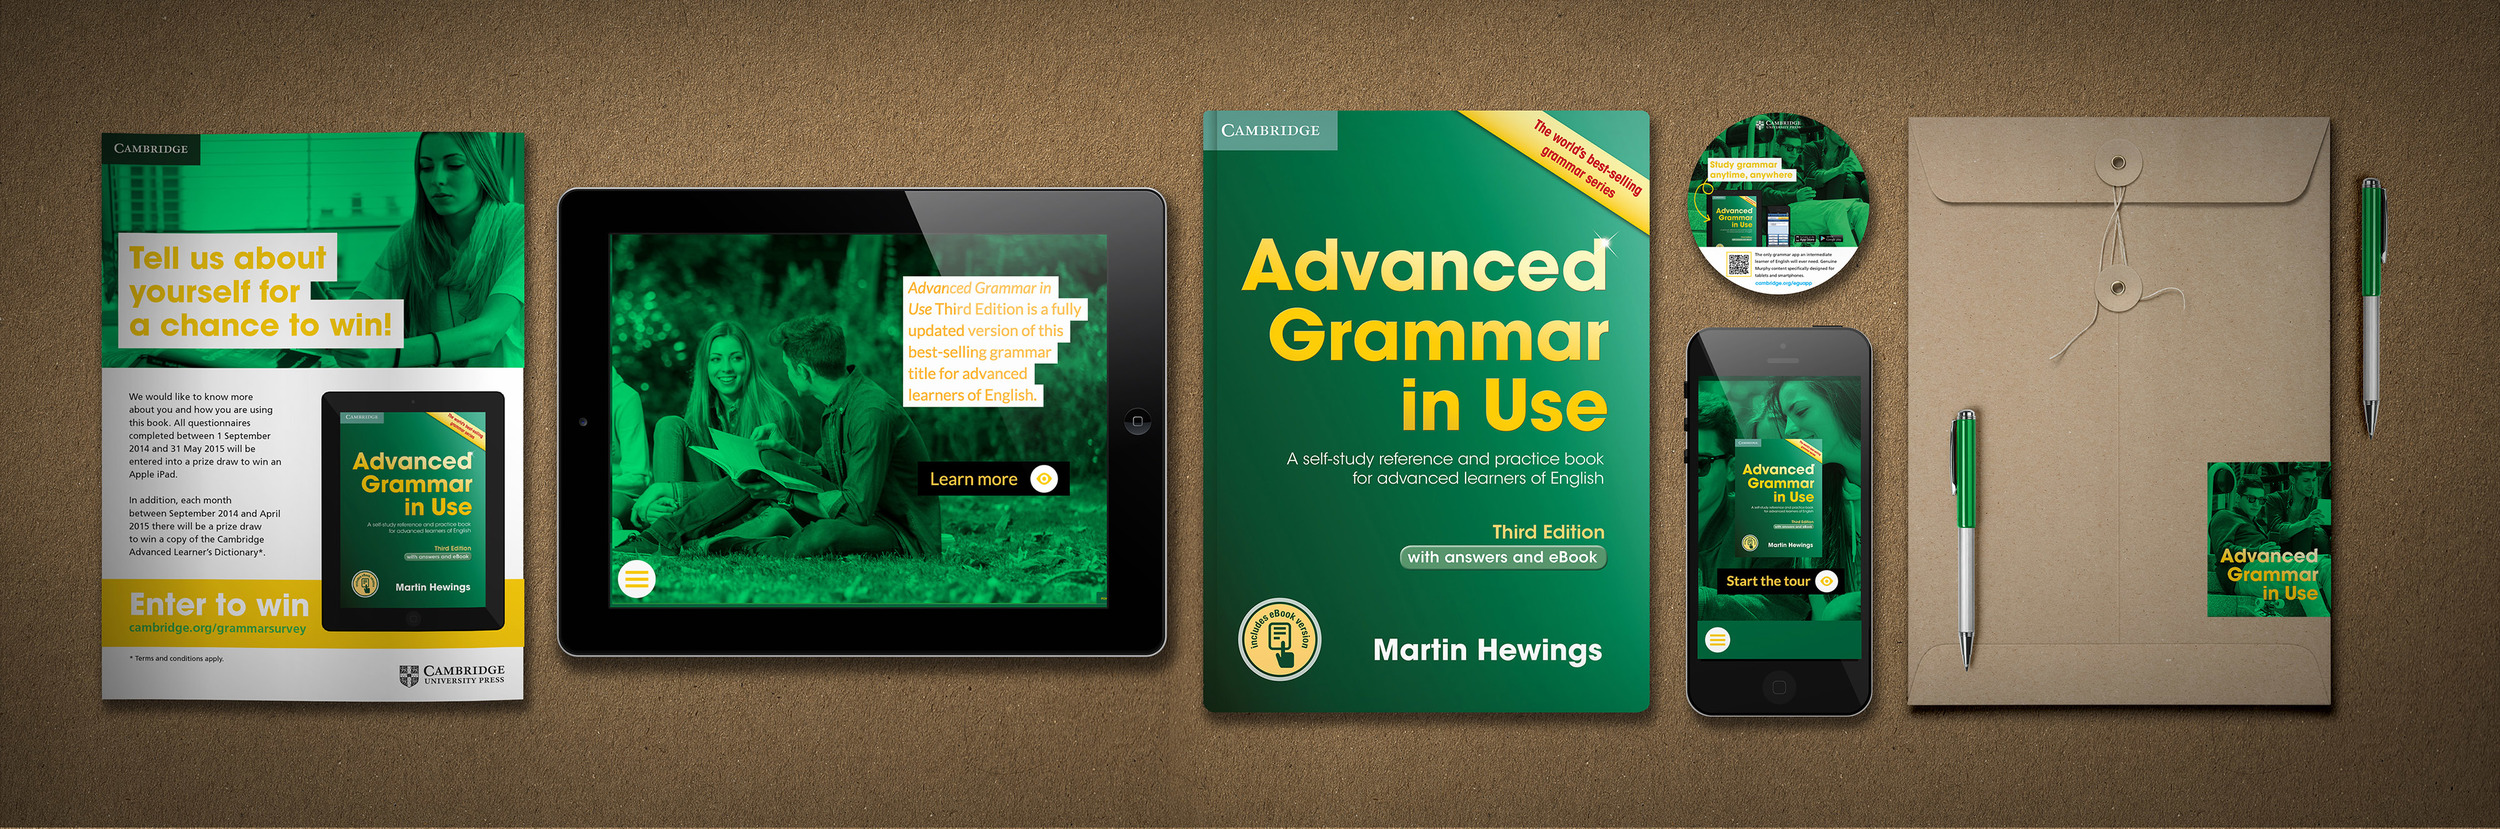 Advanced Grammar in Use — PAMGREEN